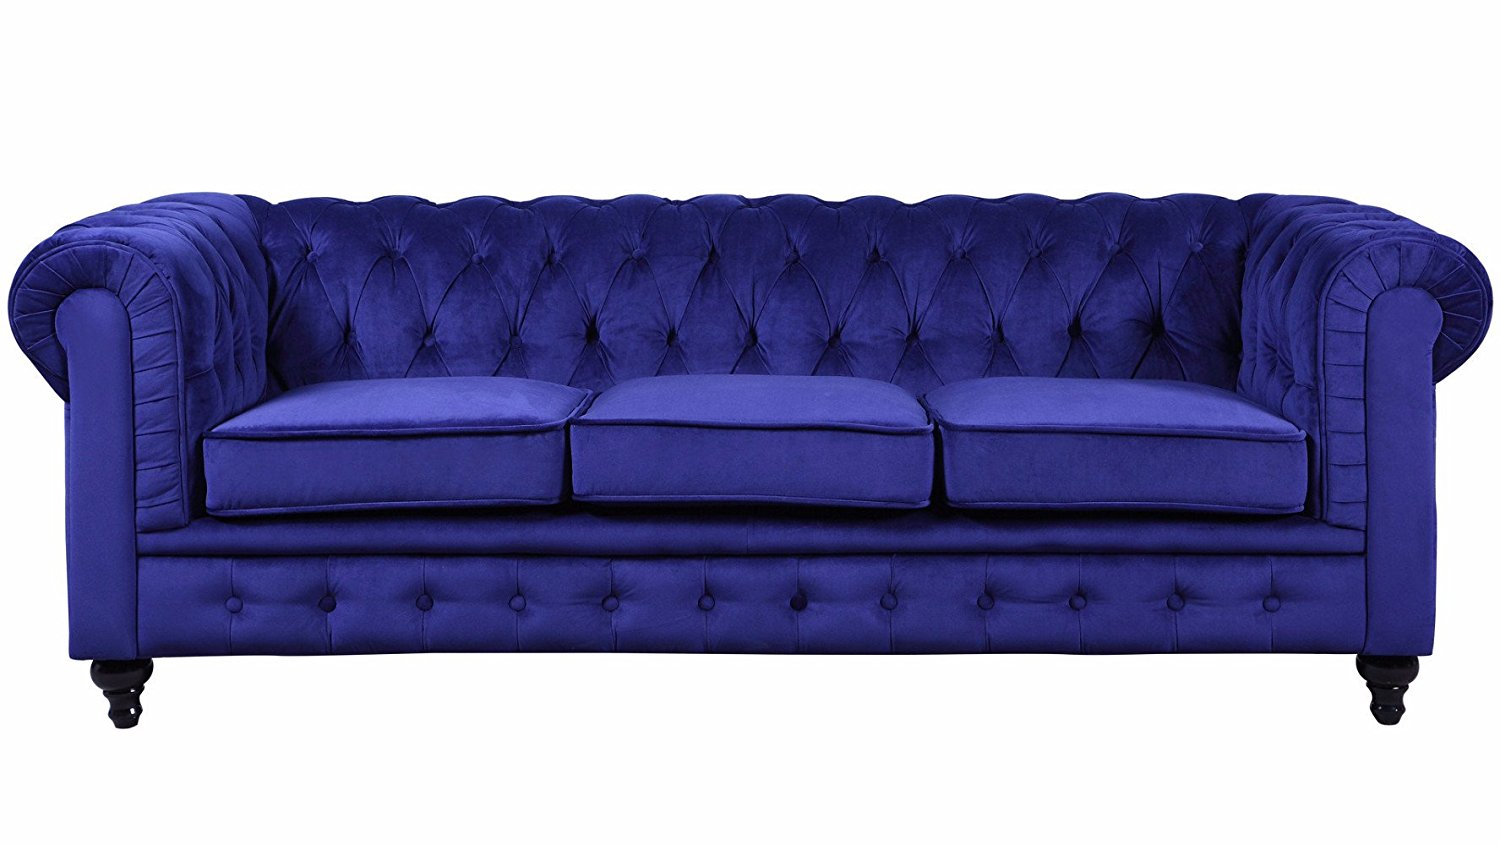 Amazon.com: Classic Velvet Scroll Arm Tufted Button Chesterfield Style Sofa (Navy): Kitchen & Dining